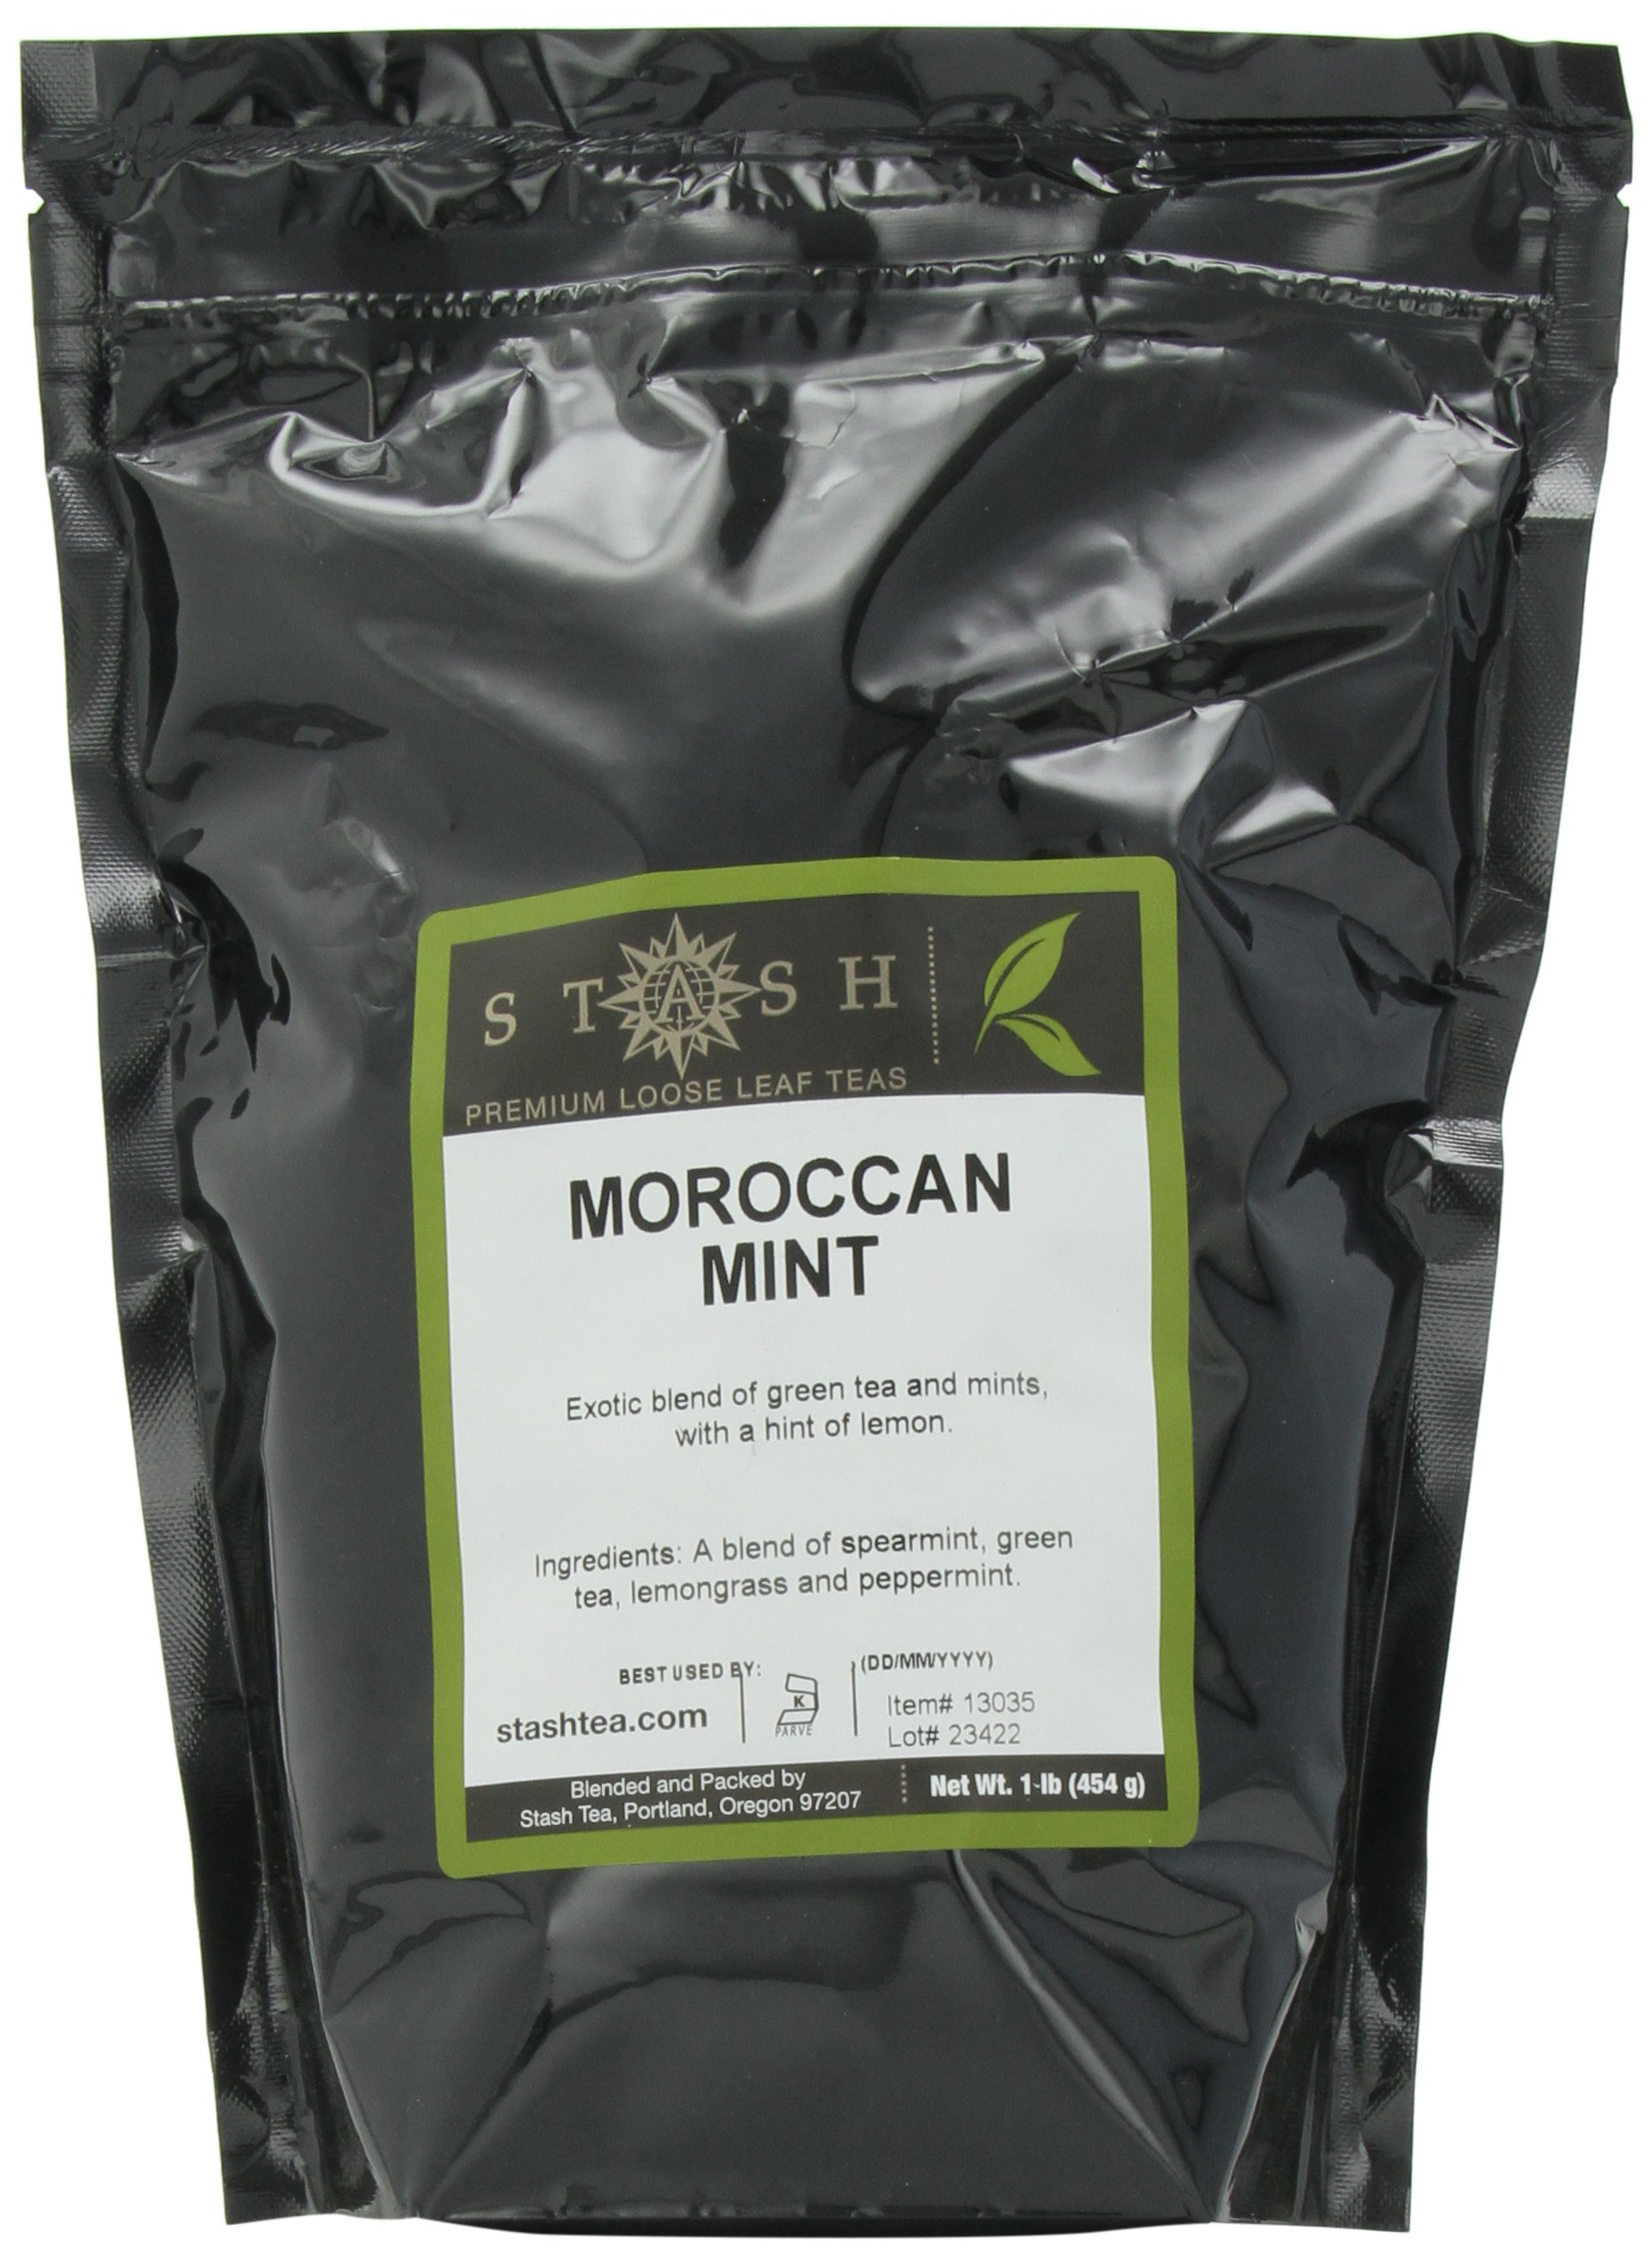 Stash Tea Moroccan Mint Loose Leaf Tea, 16 Ounce Pouch (Packaging May Vary) Premium Herbal Tea for Use with Tea Infusers Tea Strainers or Teapots, Drink Hot or Iced, Sweetened or Plain